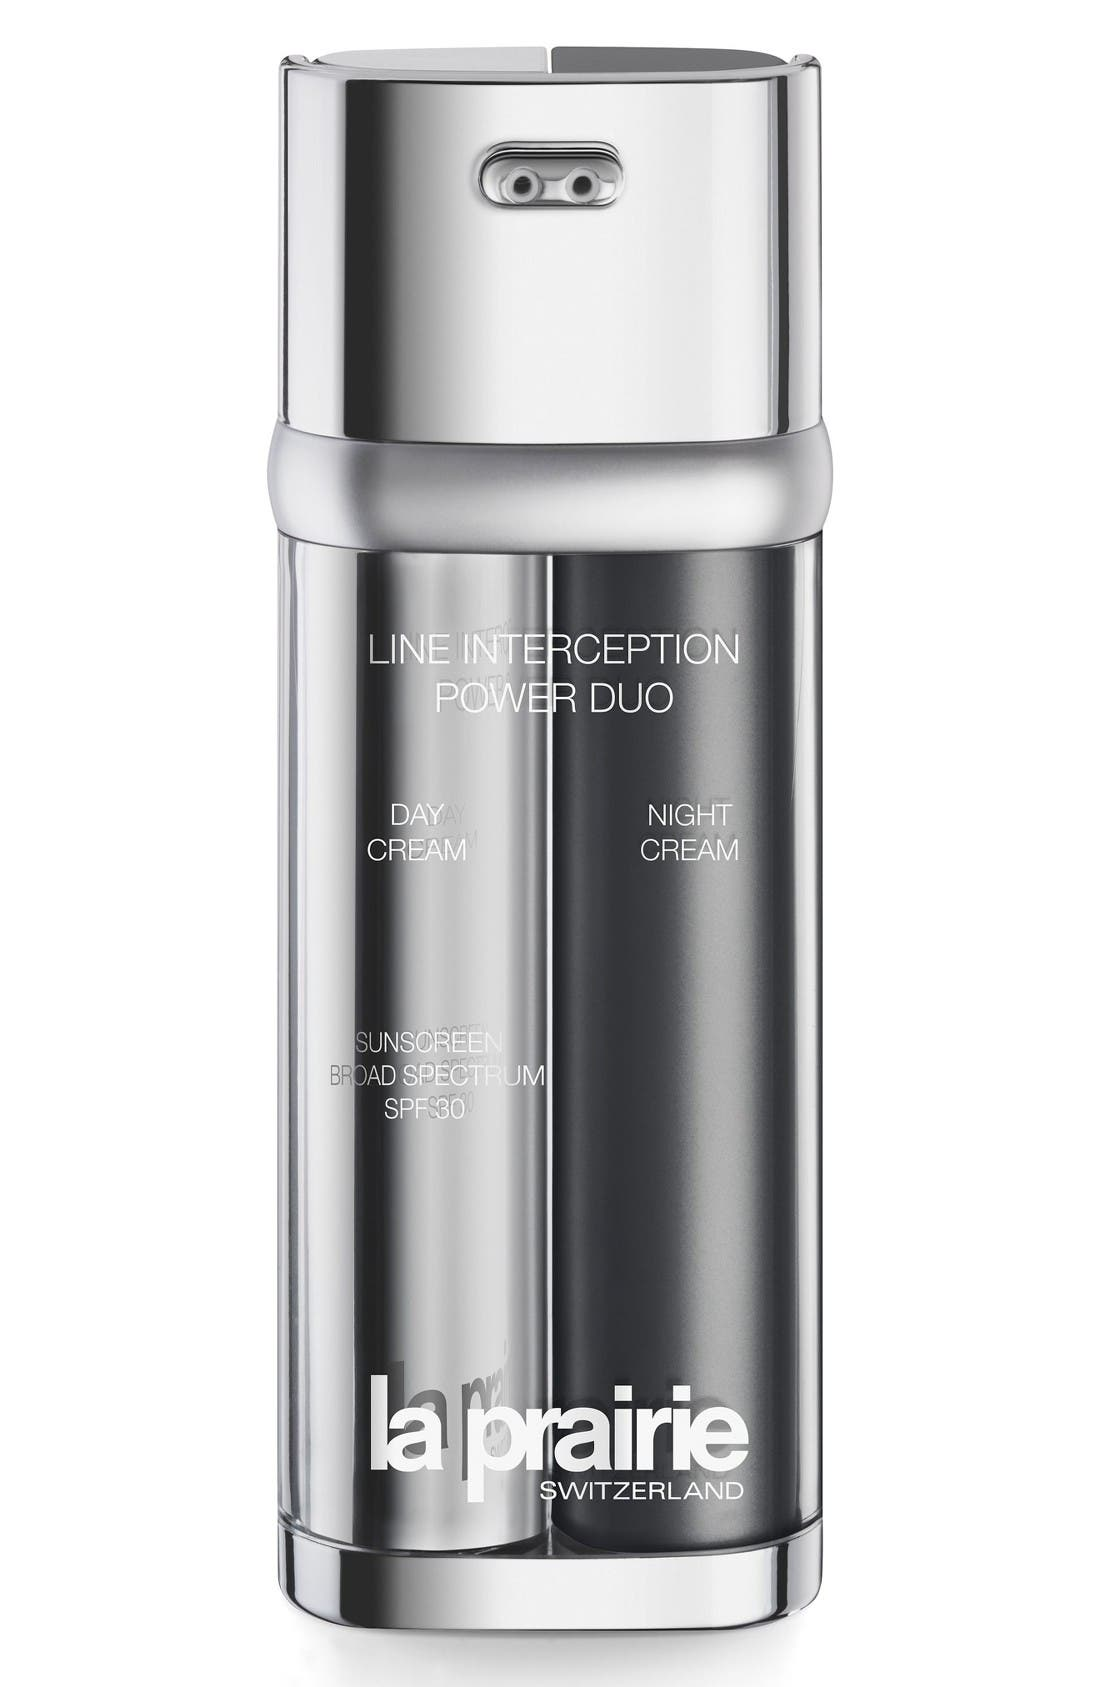 La Prairie Line Interception Power Duo Cream